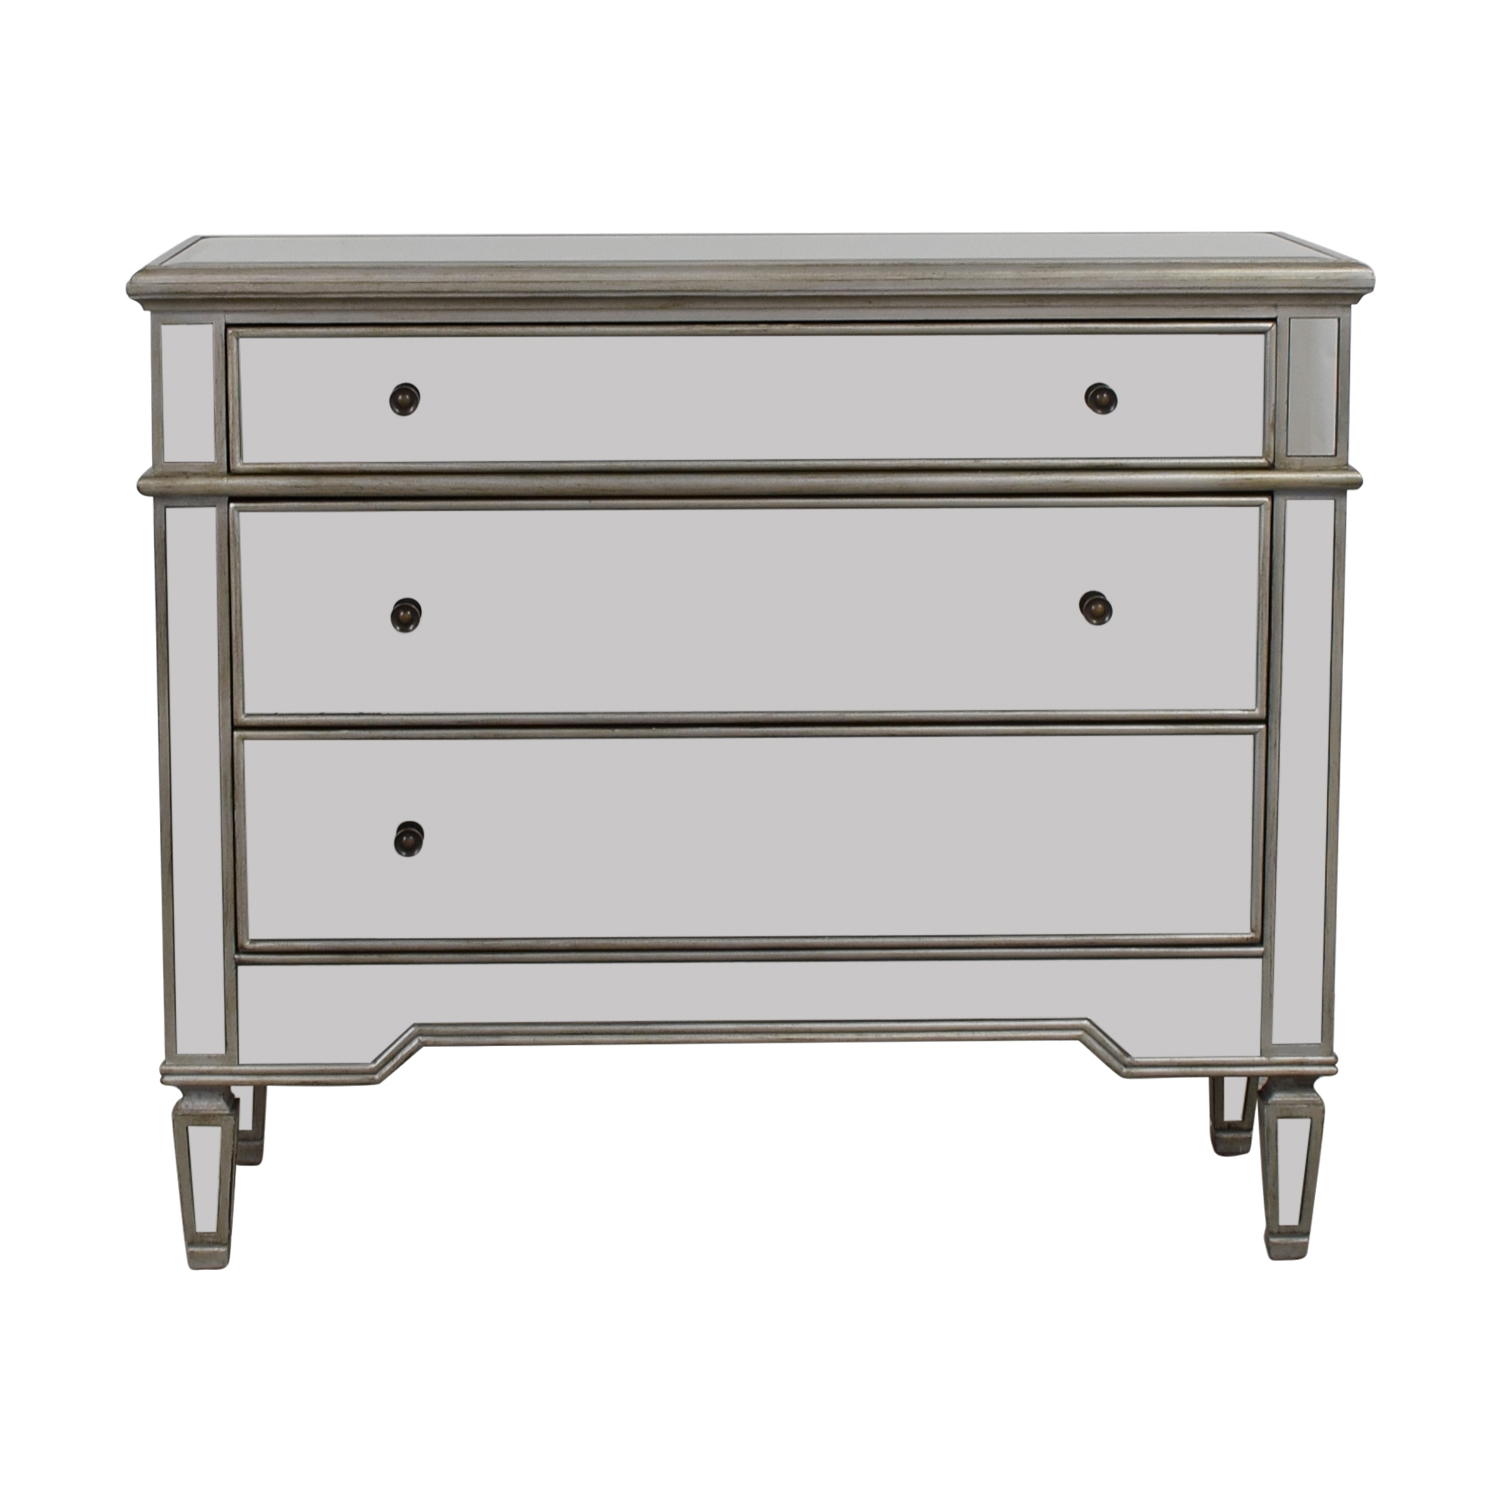 Pier 1 Imports Silver Mirrored Three-Drawer Dresser / Dressers